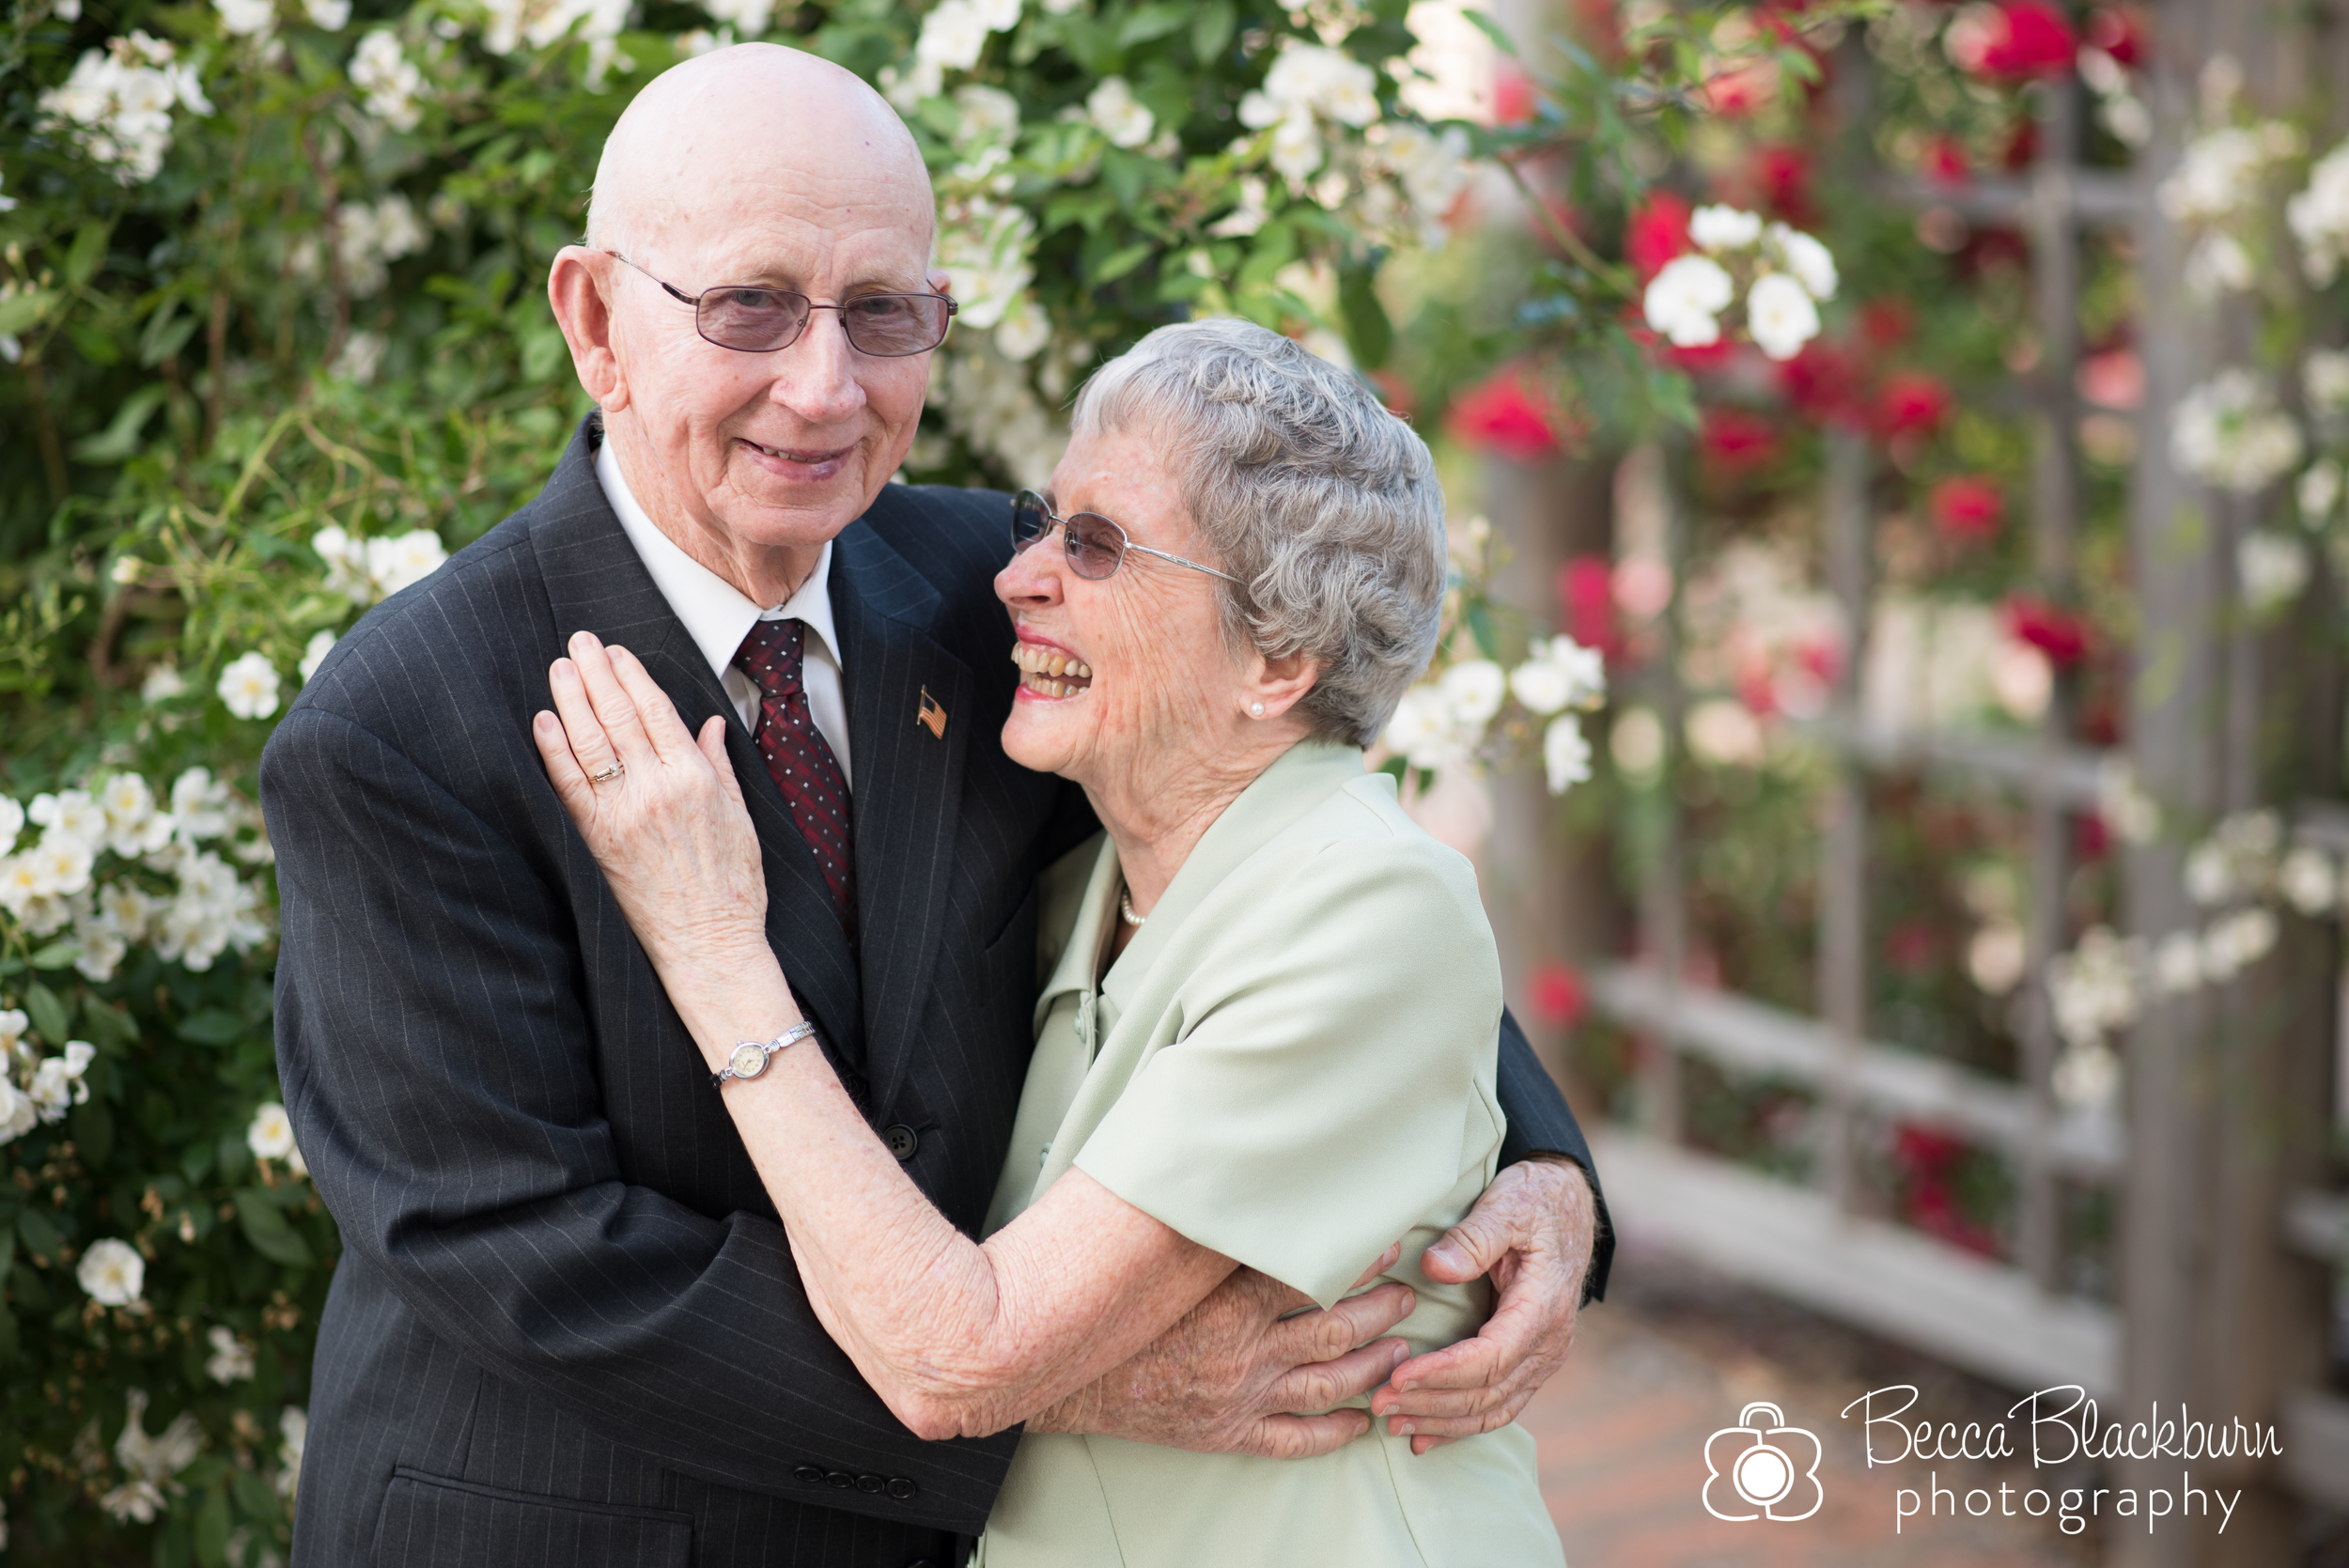 """I have always loved how Grandfather makes Grandmother giggle! Their love for each other is evident all the time! They have always encouraged me and prayed for me in various situations of life! They're a great example of the kind of marriage that I want to have with my husband for years and years!"" -Ashley"